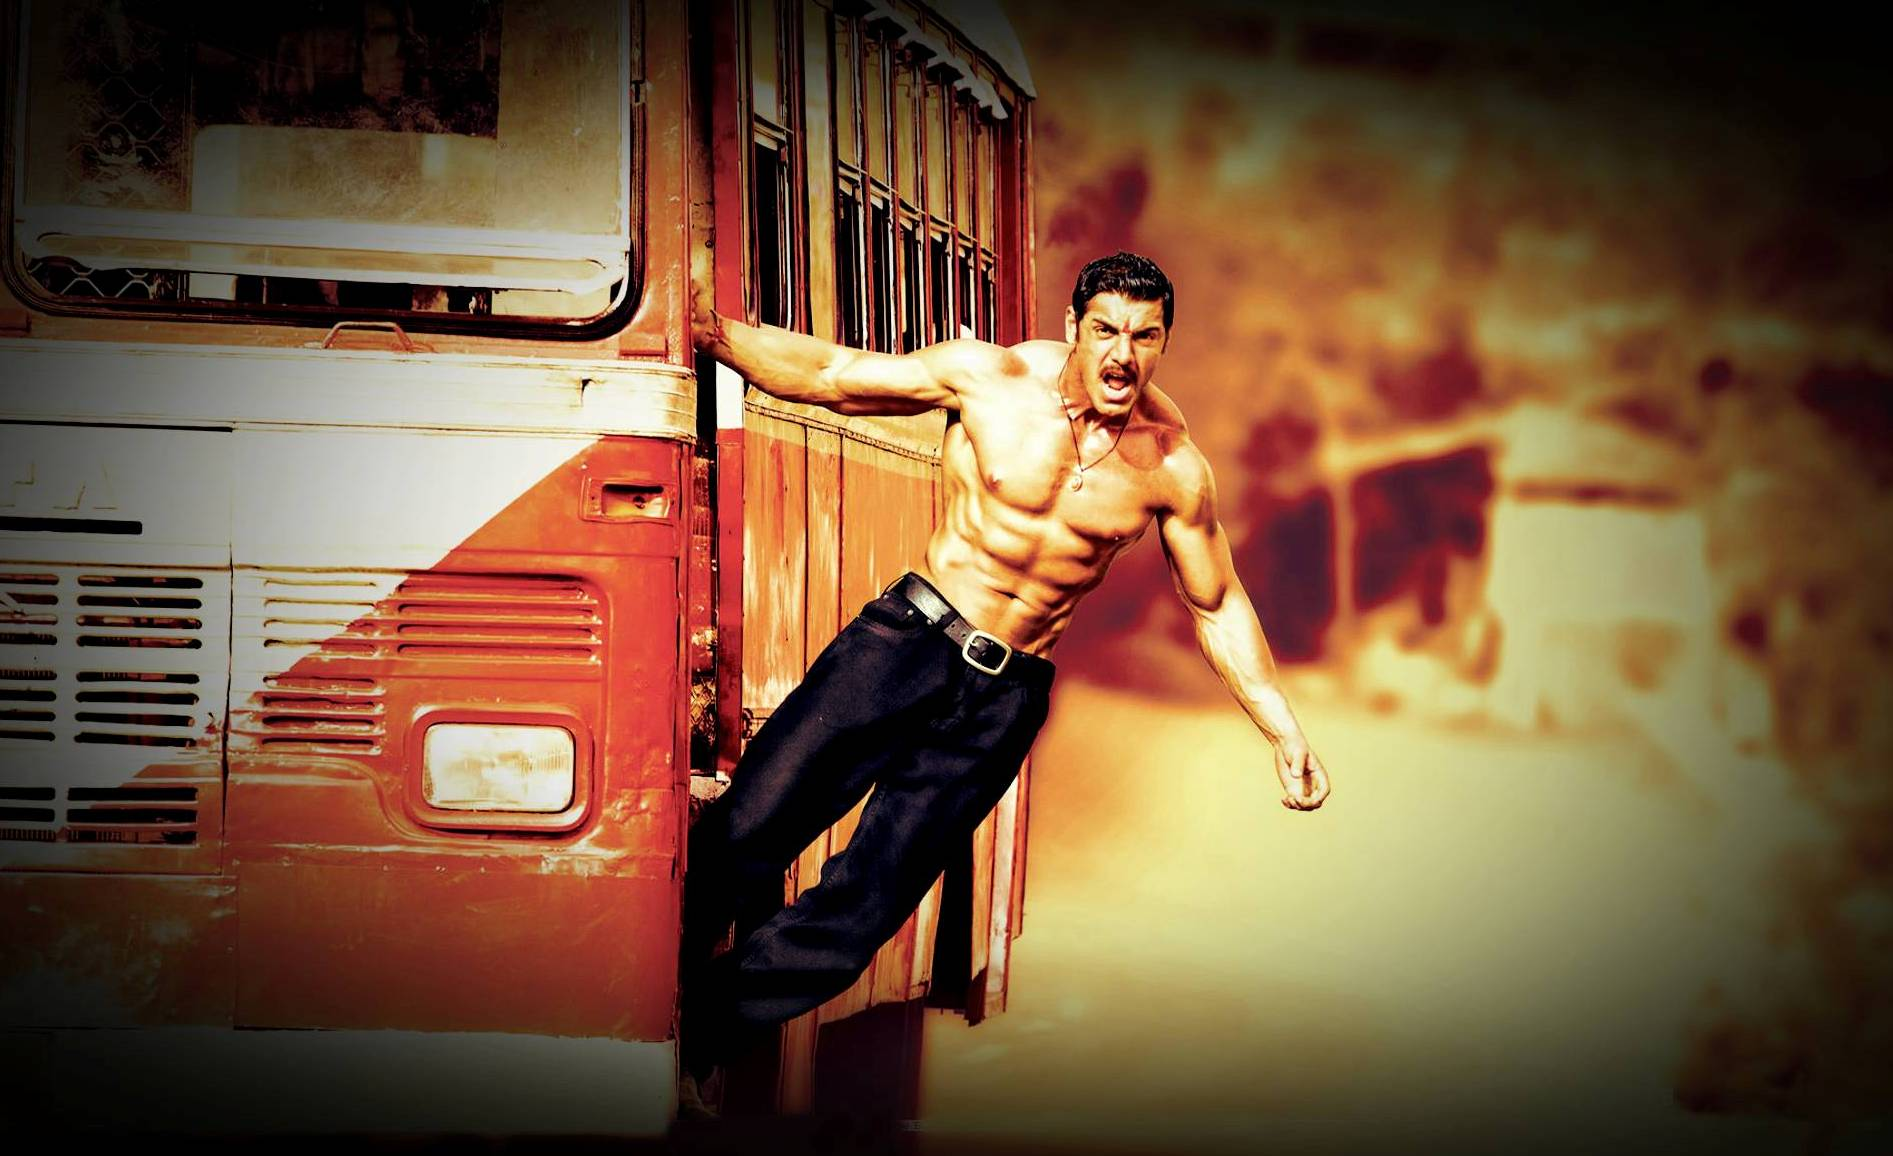 Watch Full Movie Online Shootout at Wadala 2013